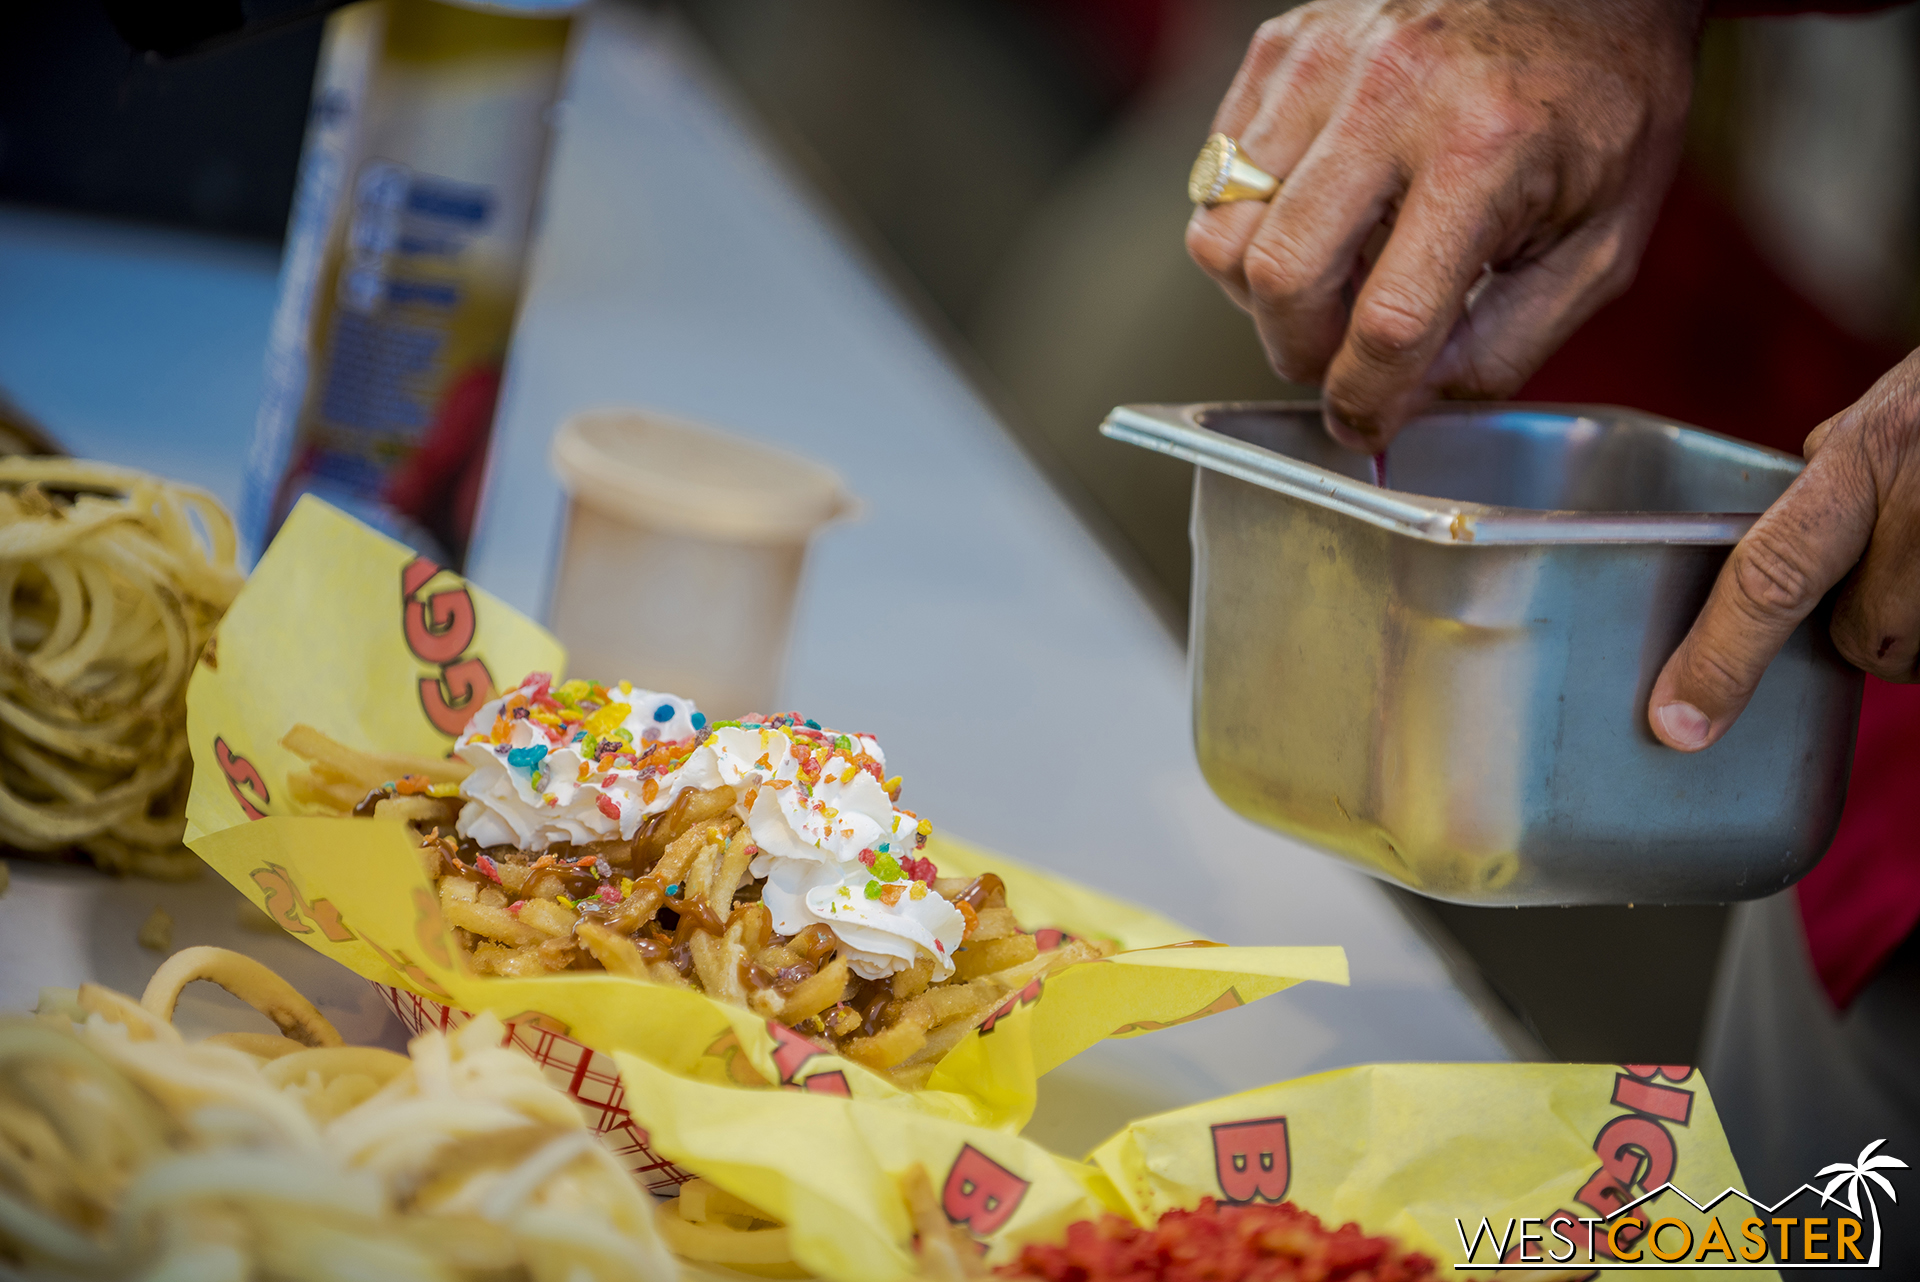 Actual French fries, covered in sugar and cinnamon and caramel and whipped cream and Fruity Pebbles.